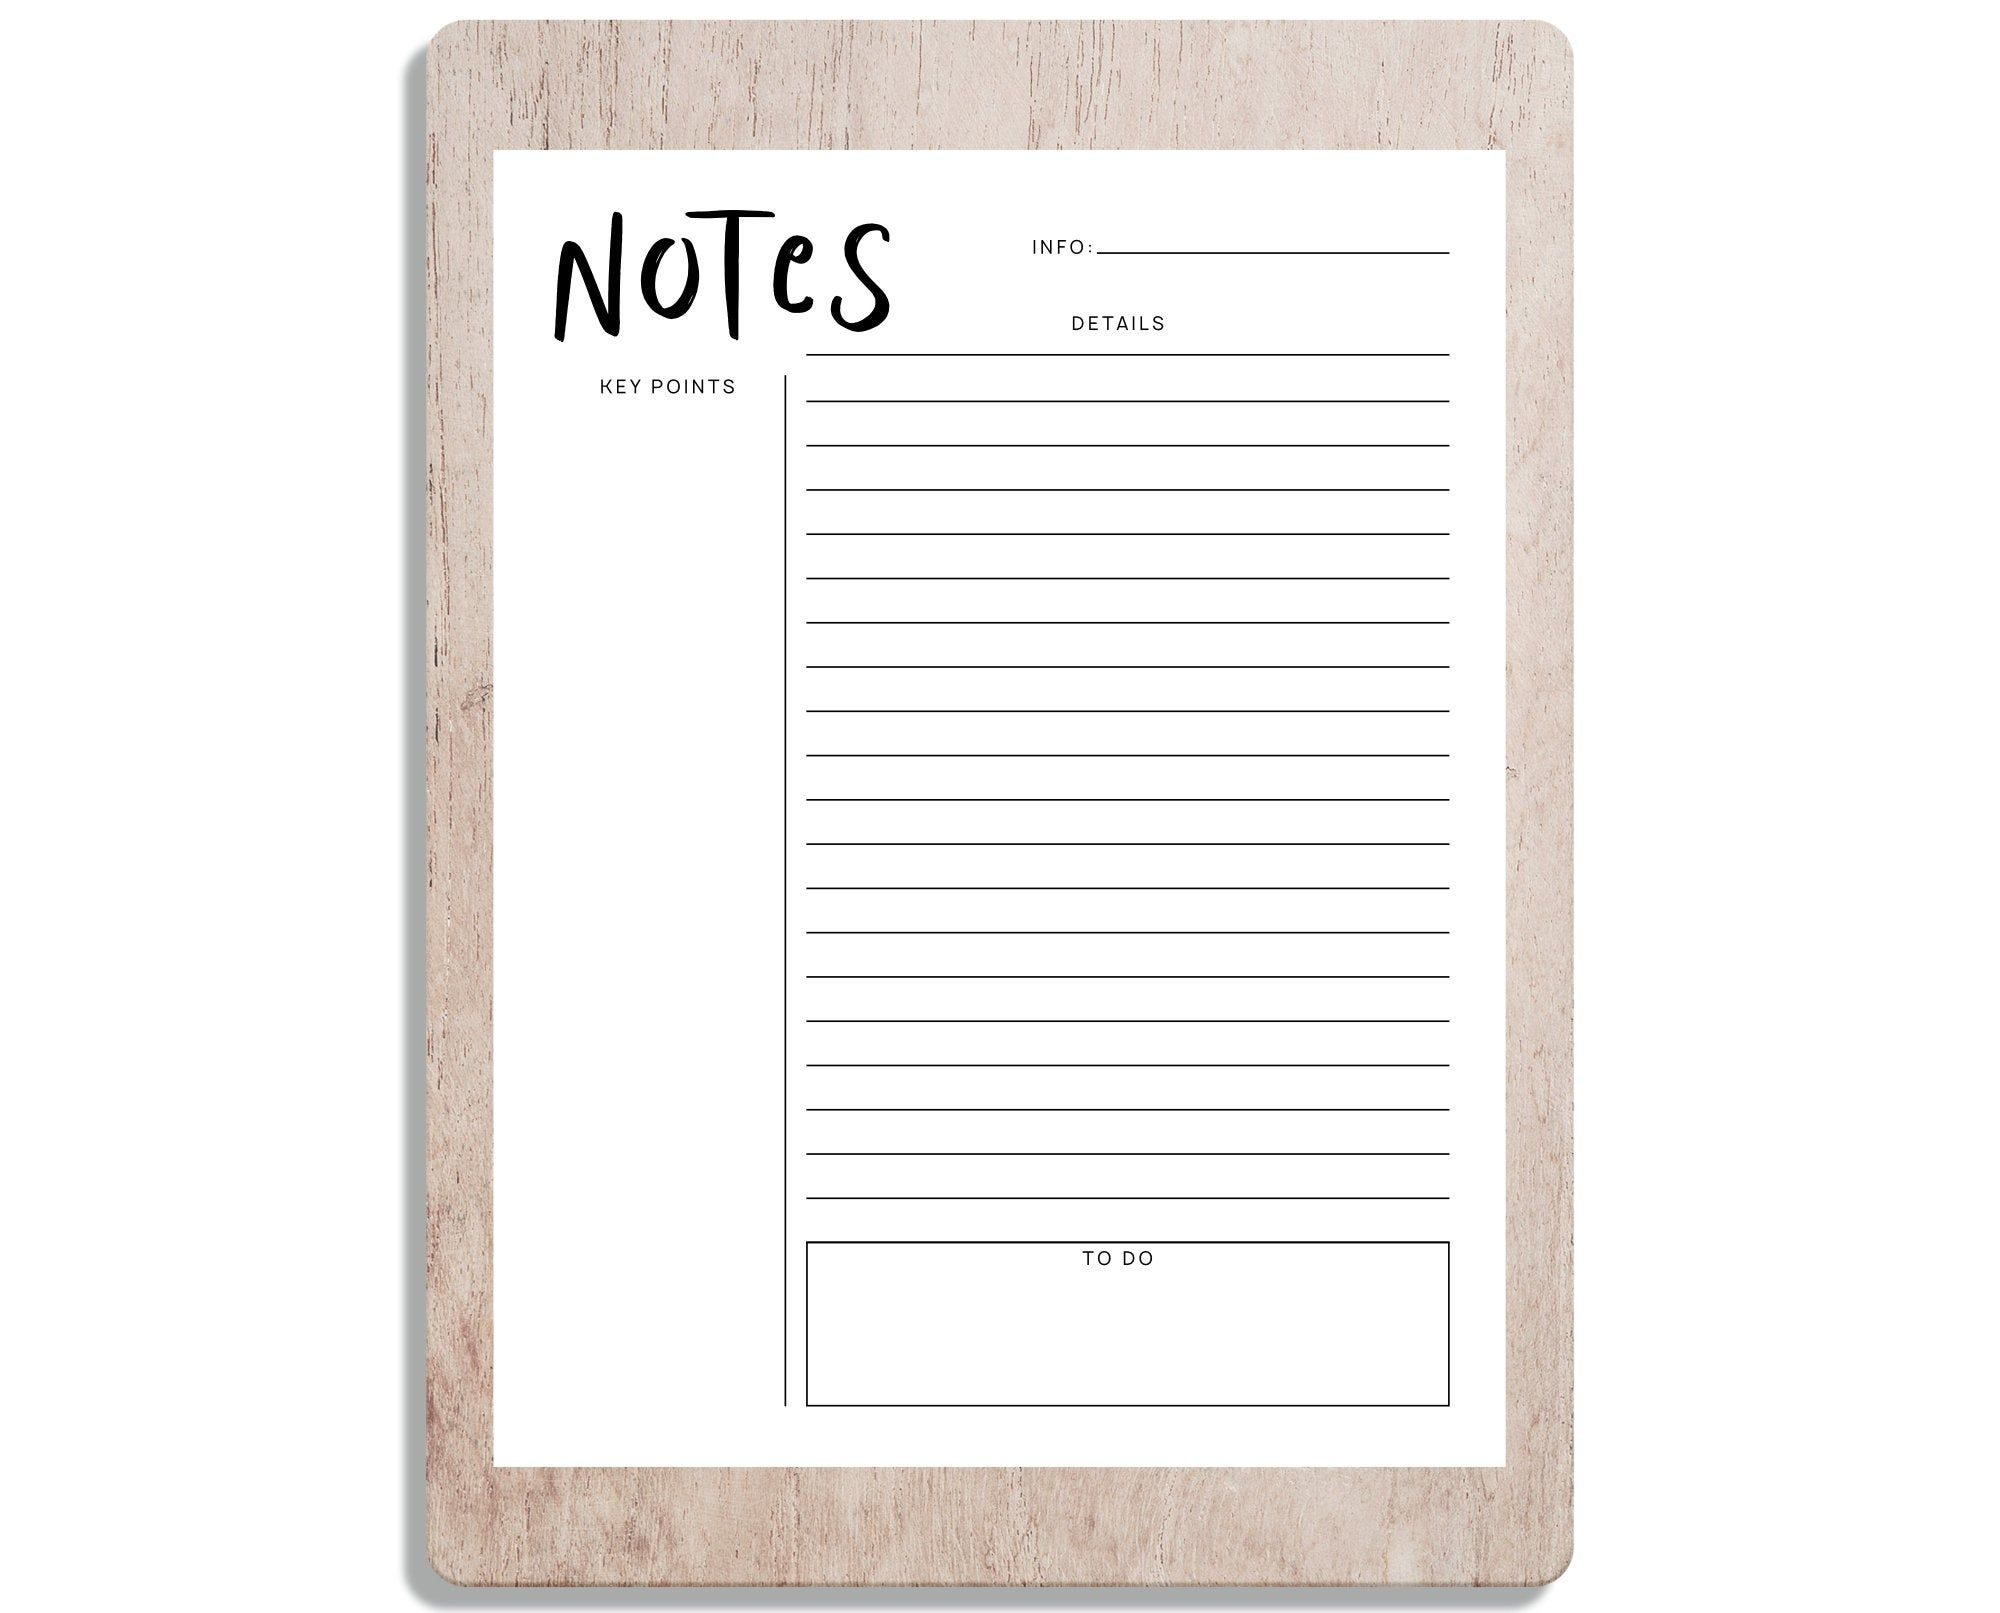 Printable Notes Printable Notes Note Taking School Organizer Lecture Notes College Notes Note Taking Templa Printable Notes College Notes Lectures Notes